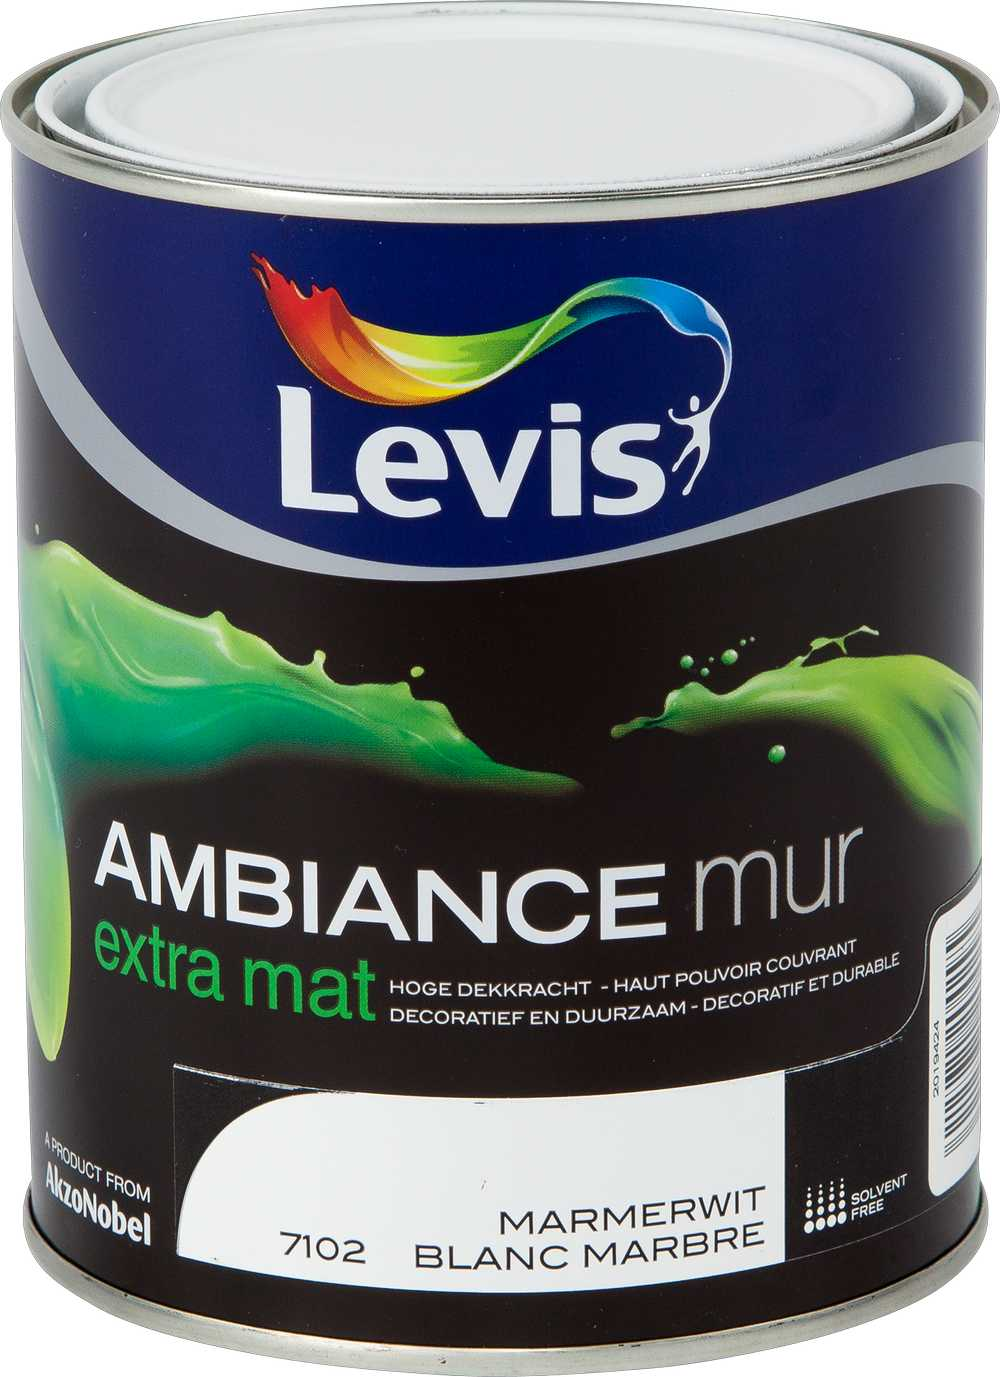 AMBIANCE MUR EXTRA MAT - MARMERWIT 7102 1 L